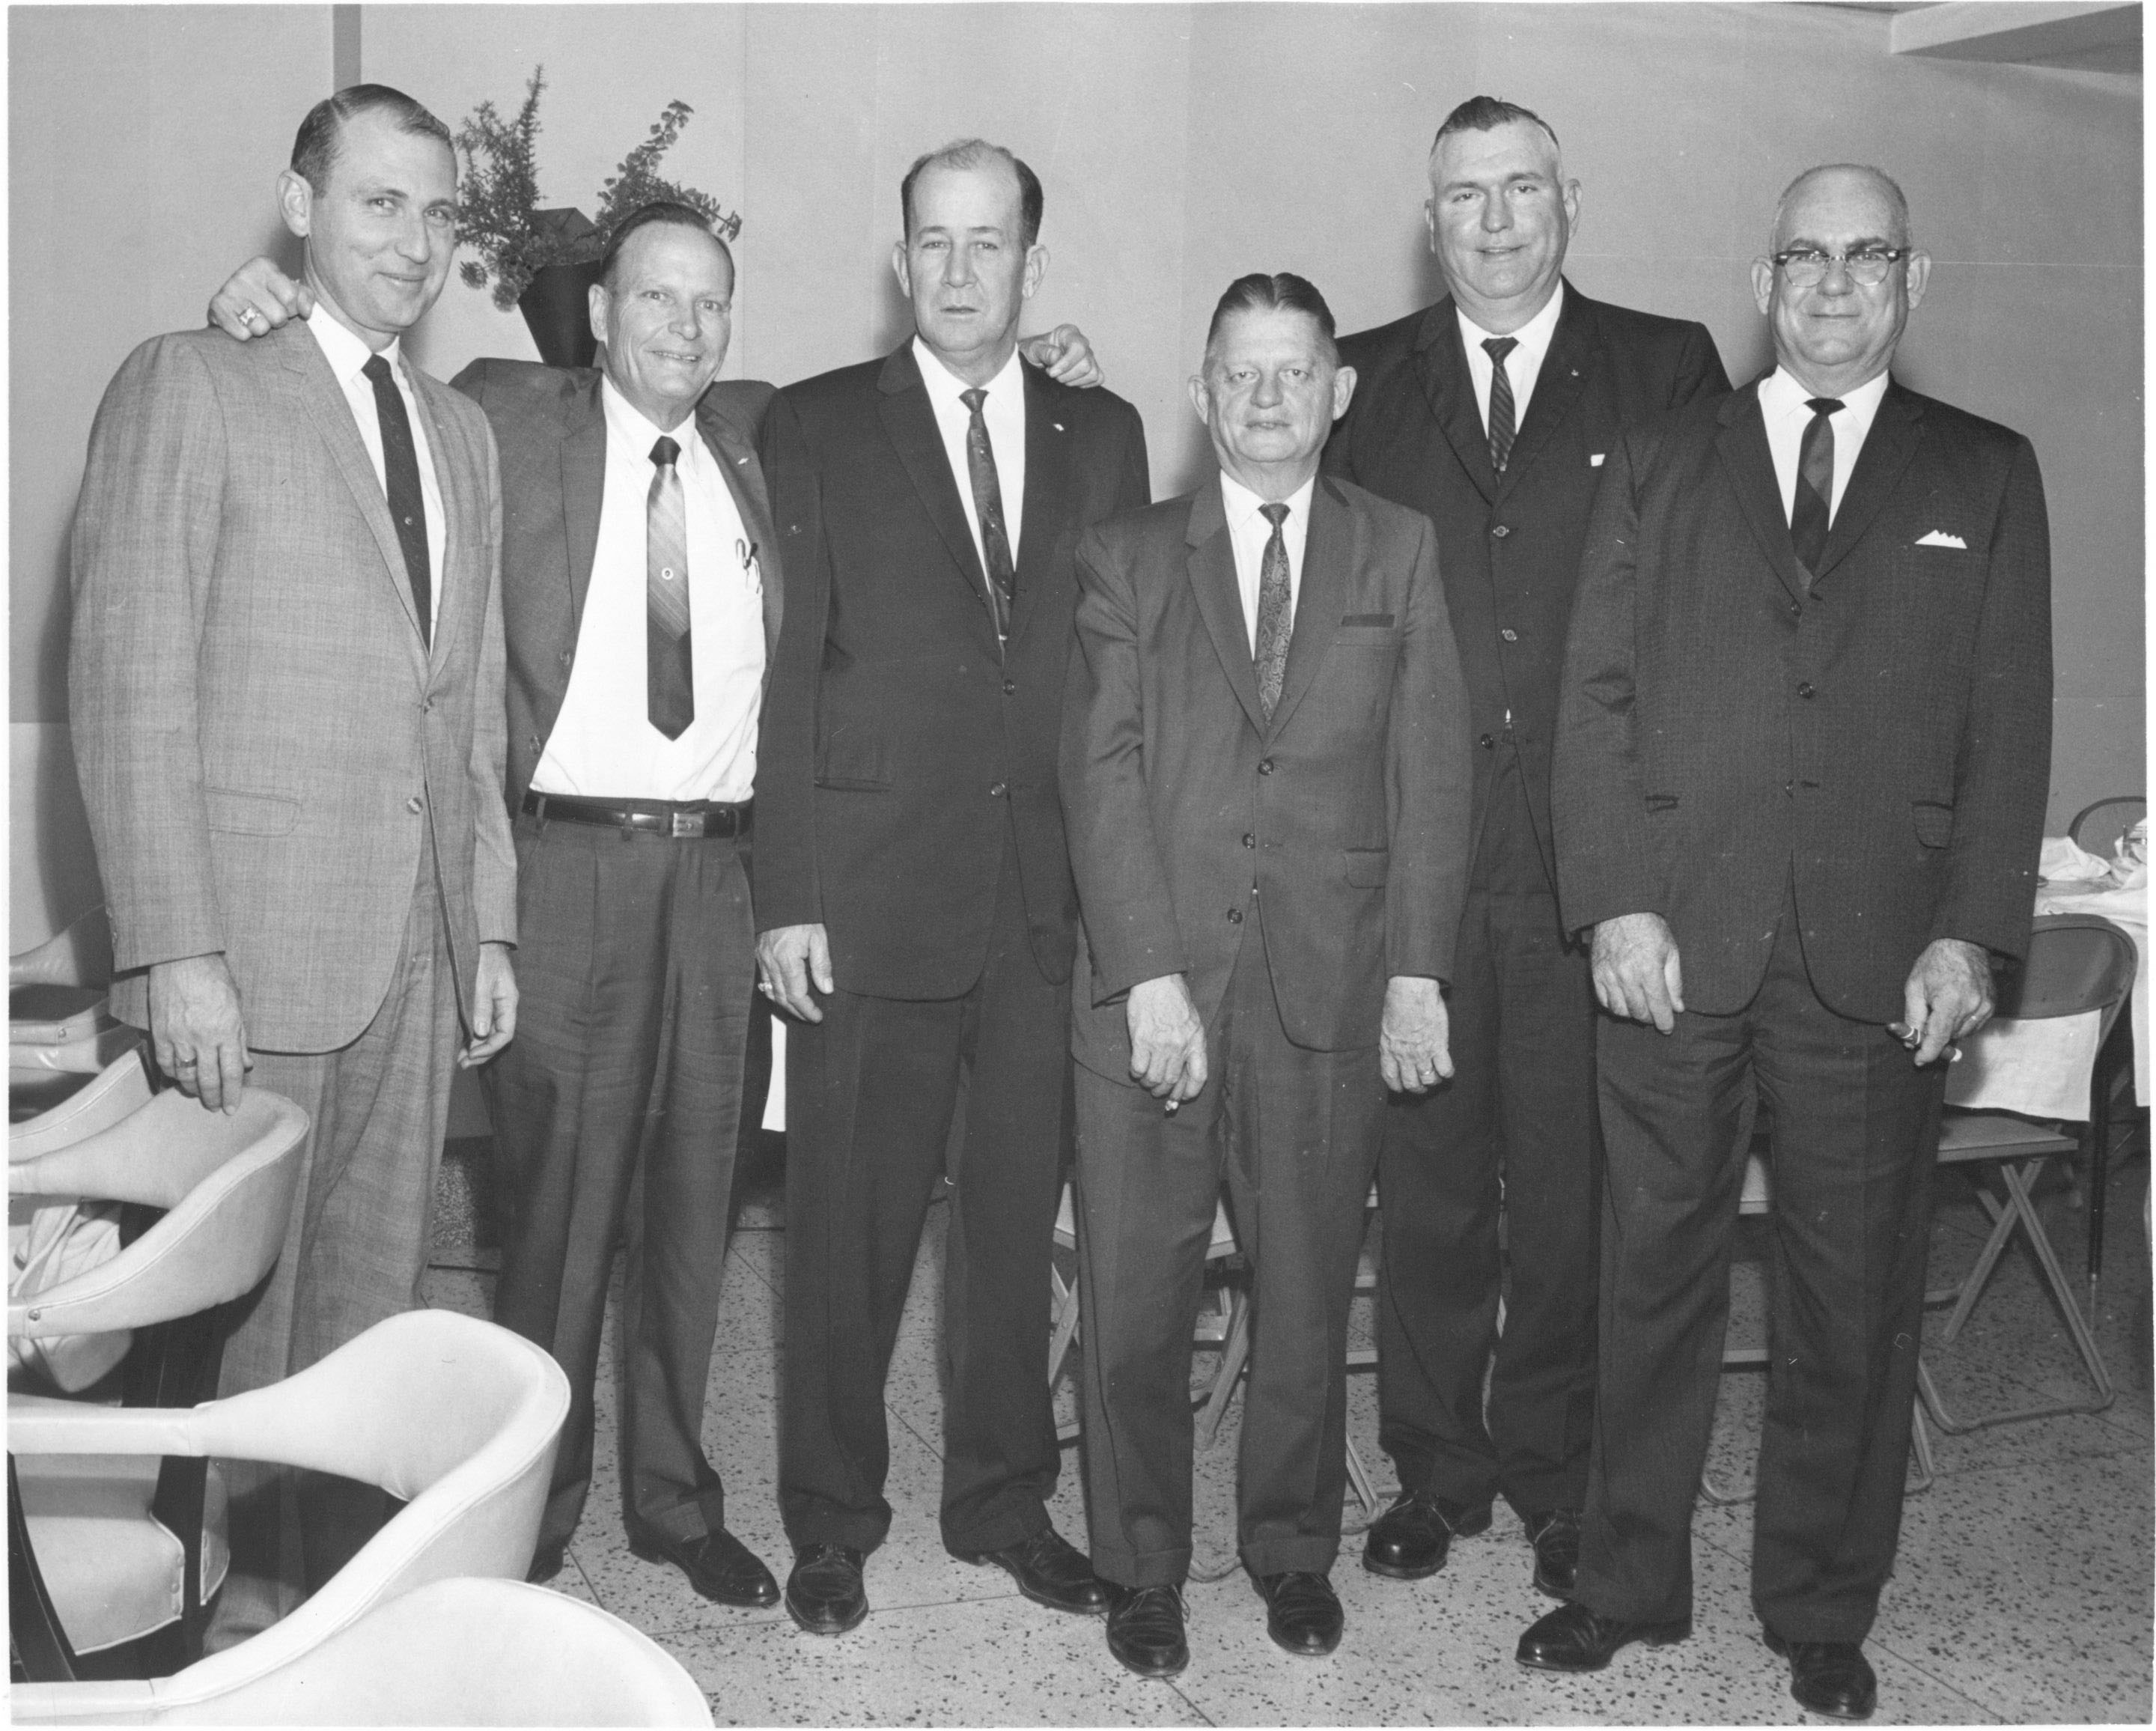 Group of men in suits and ties